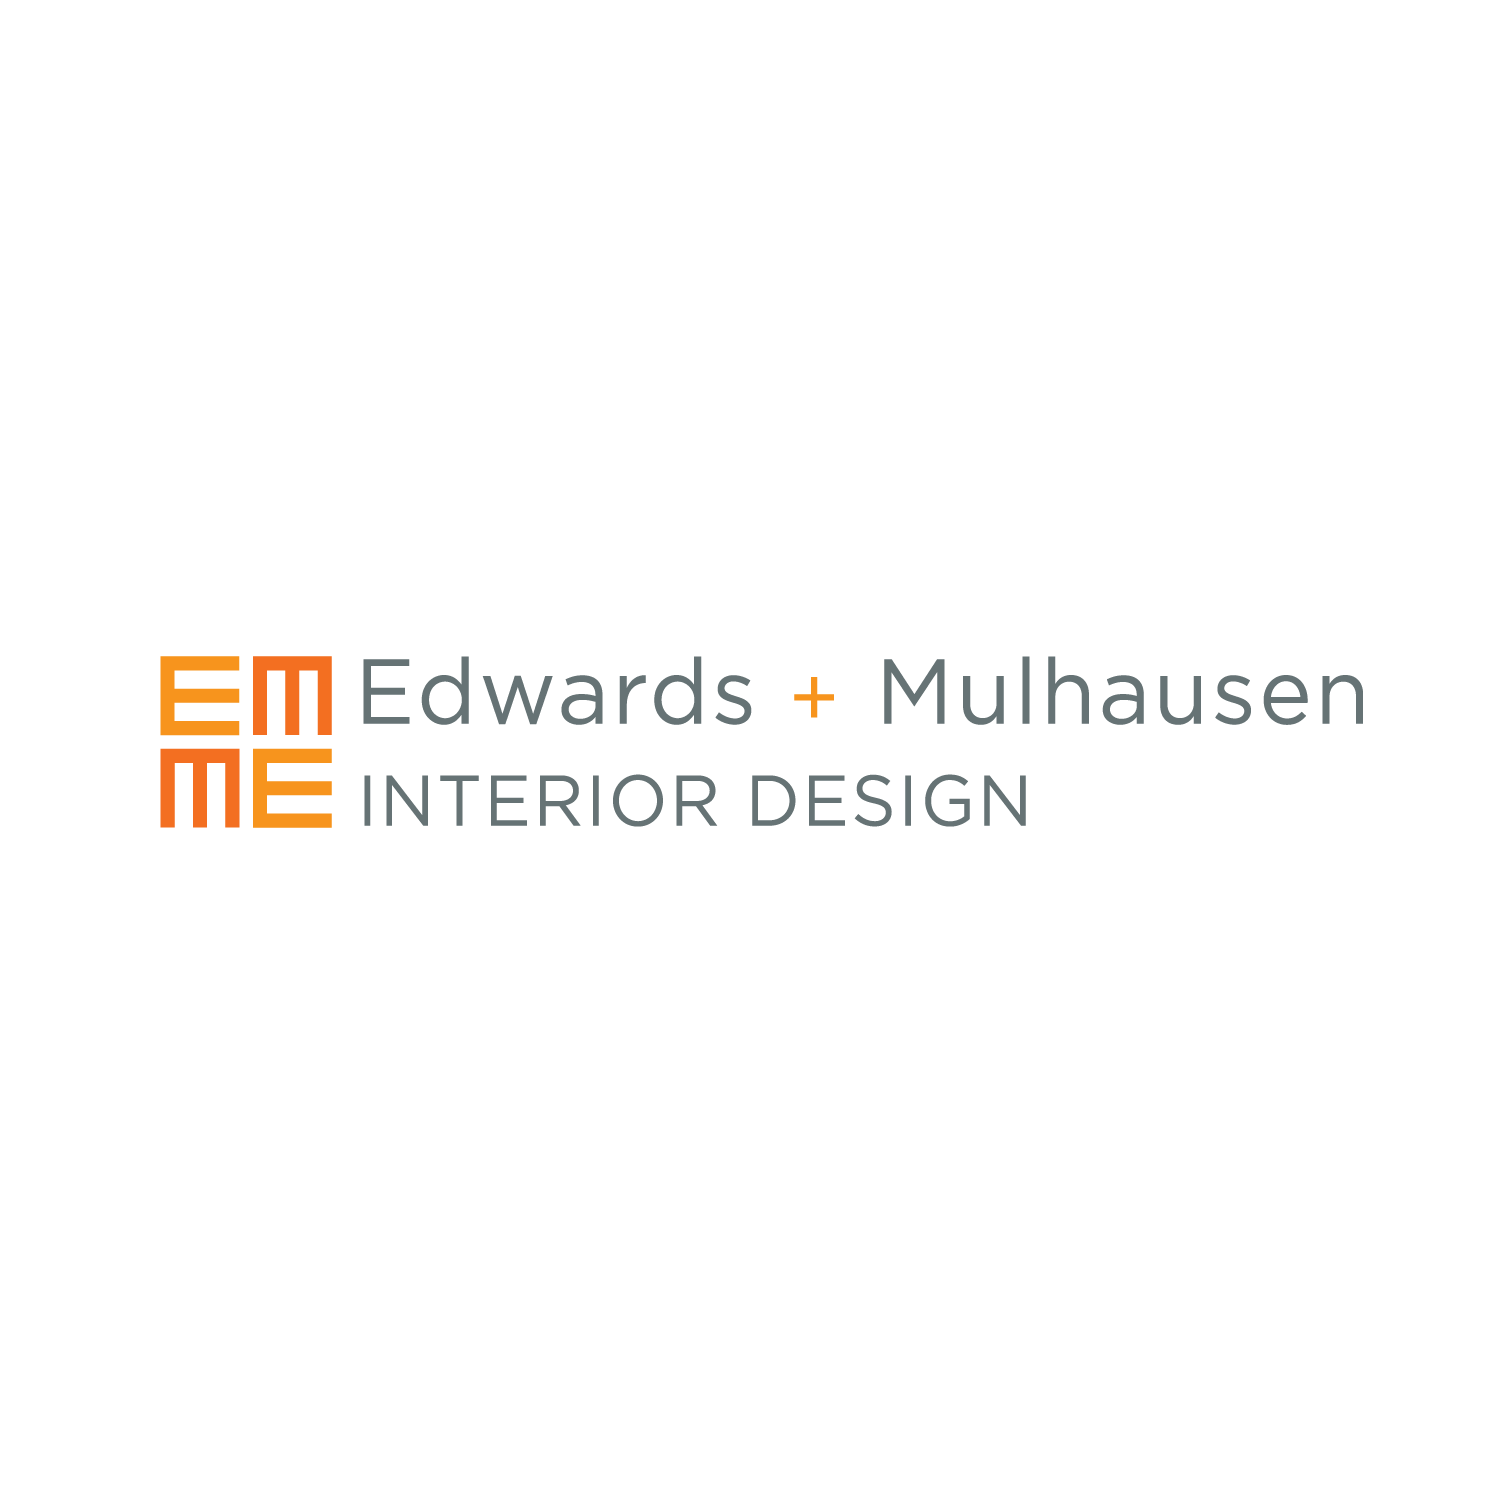 Edwards Mulhausen Interior Design